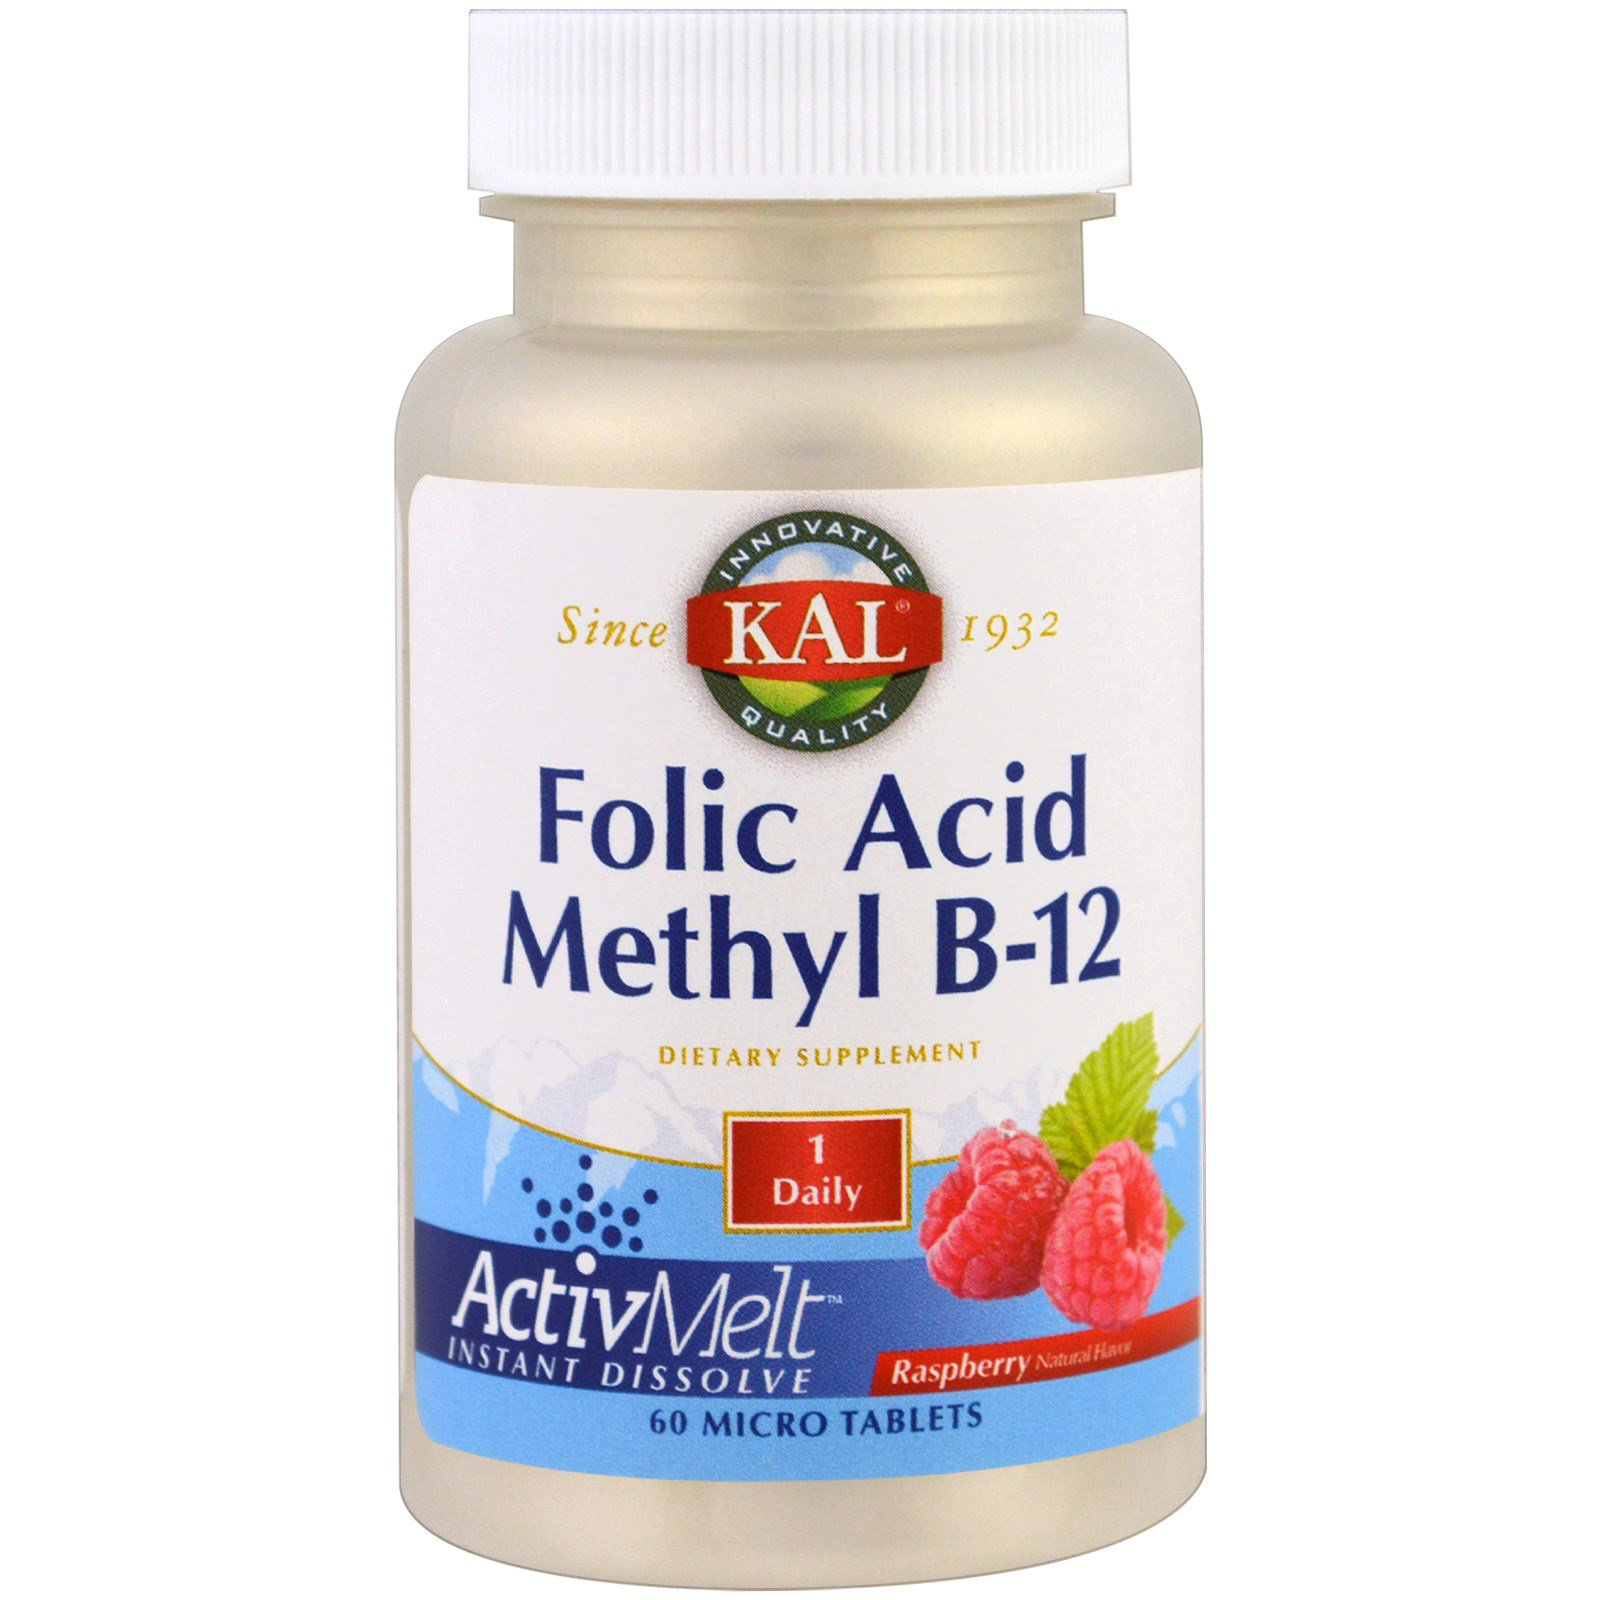 KAL, Folic Acid Methyl B-12, ActivMelt, Raspberry , 60 Micro Tablets